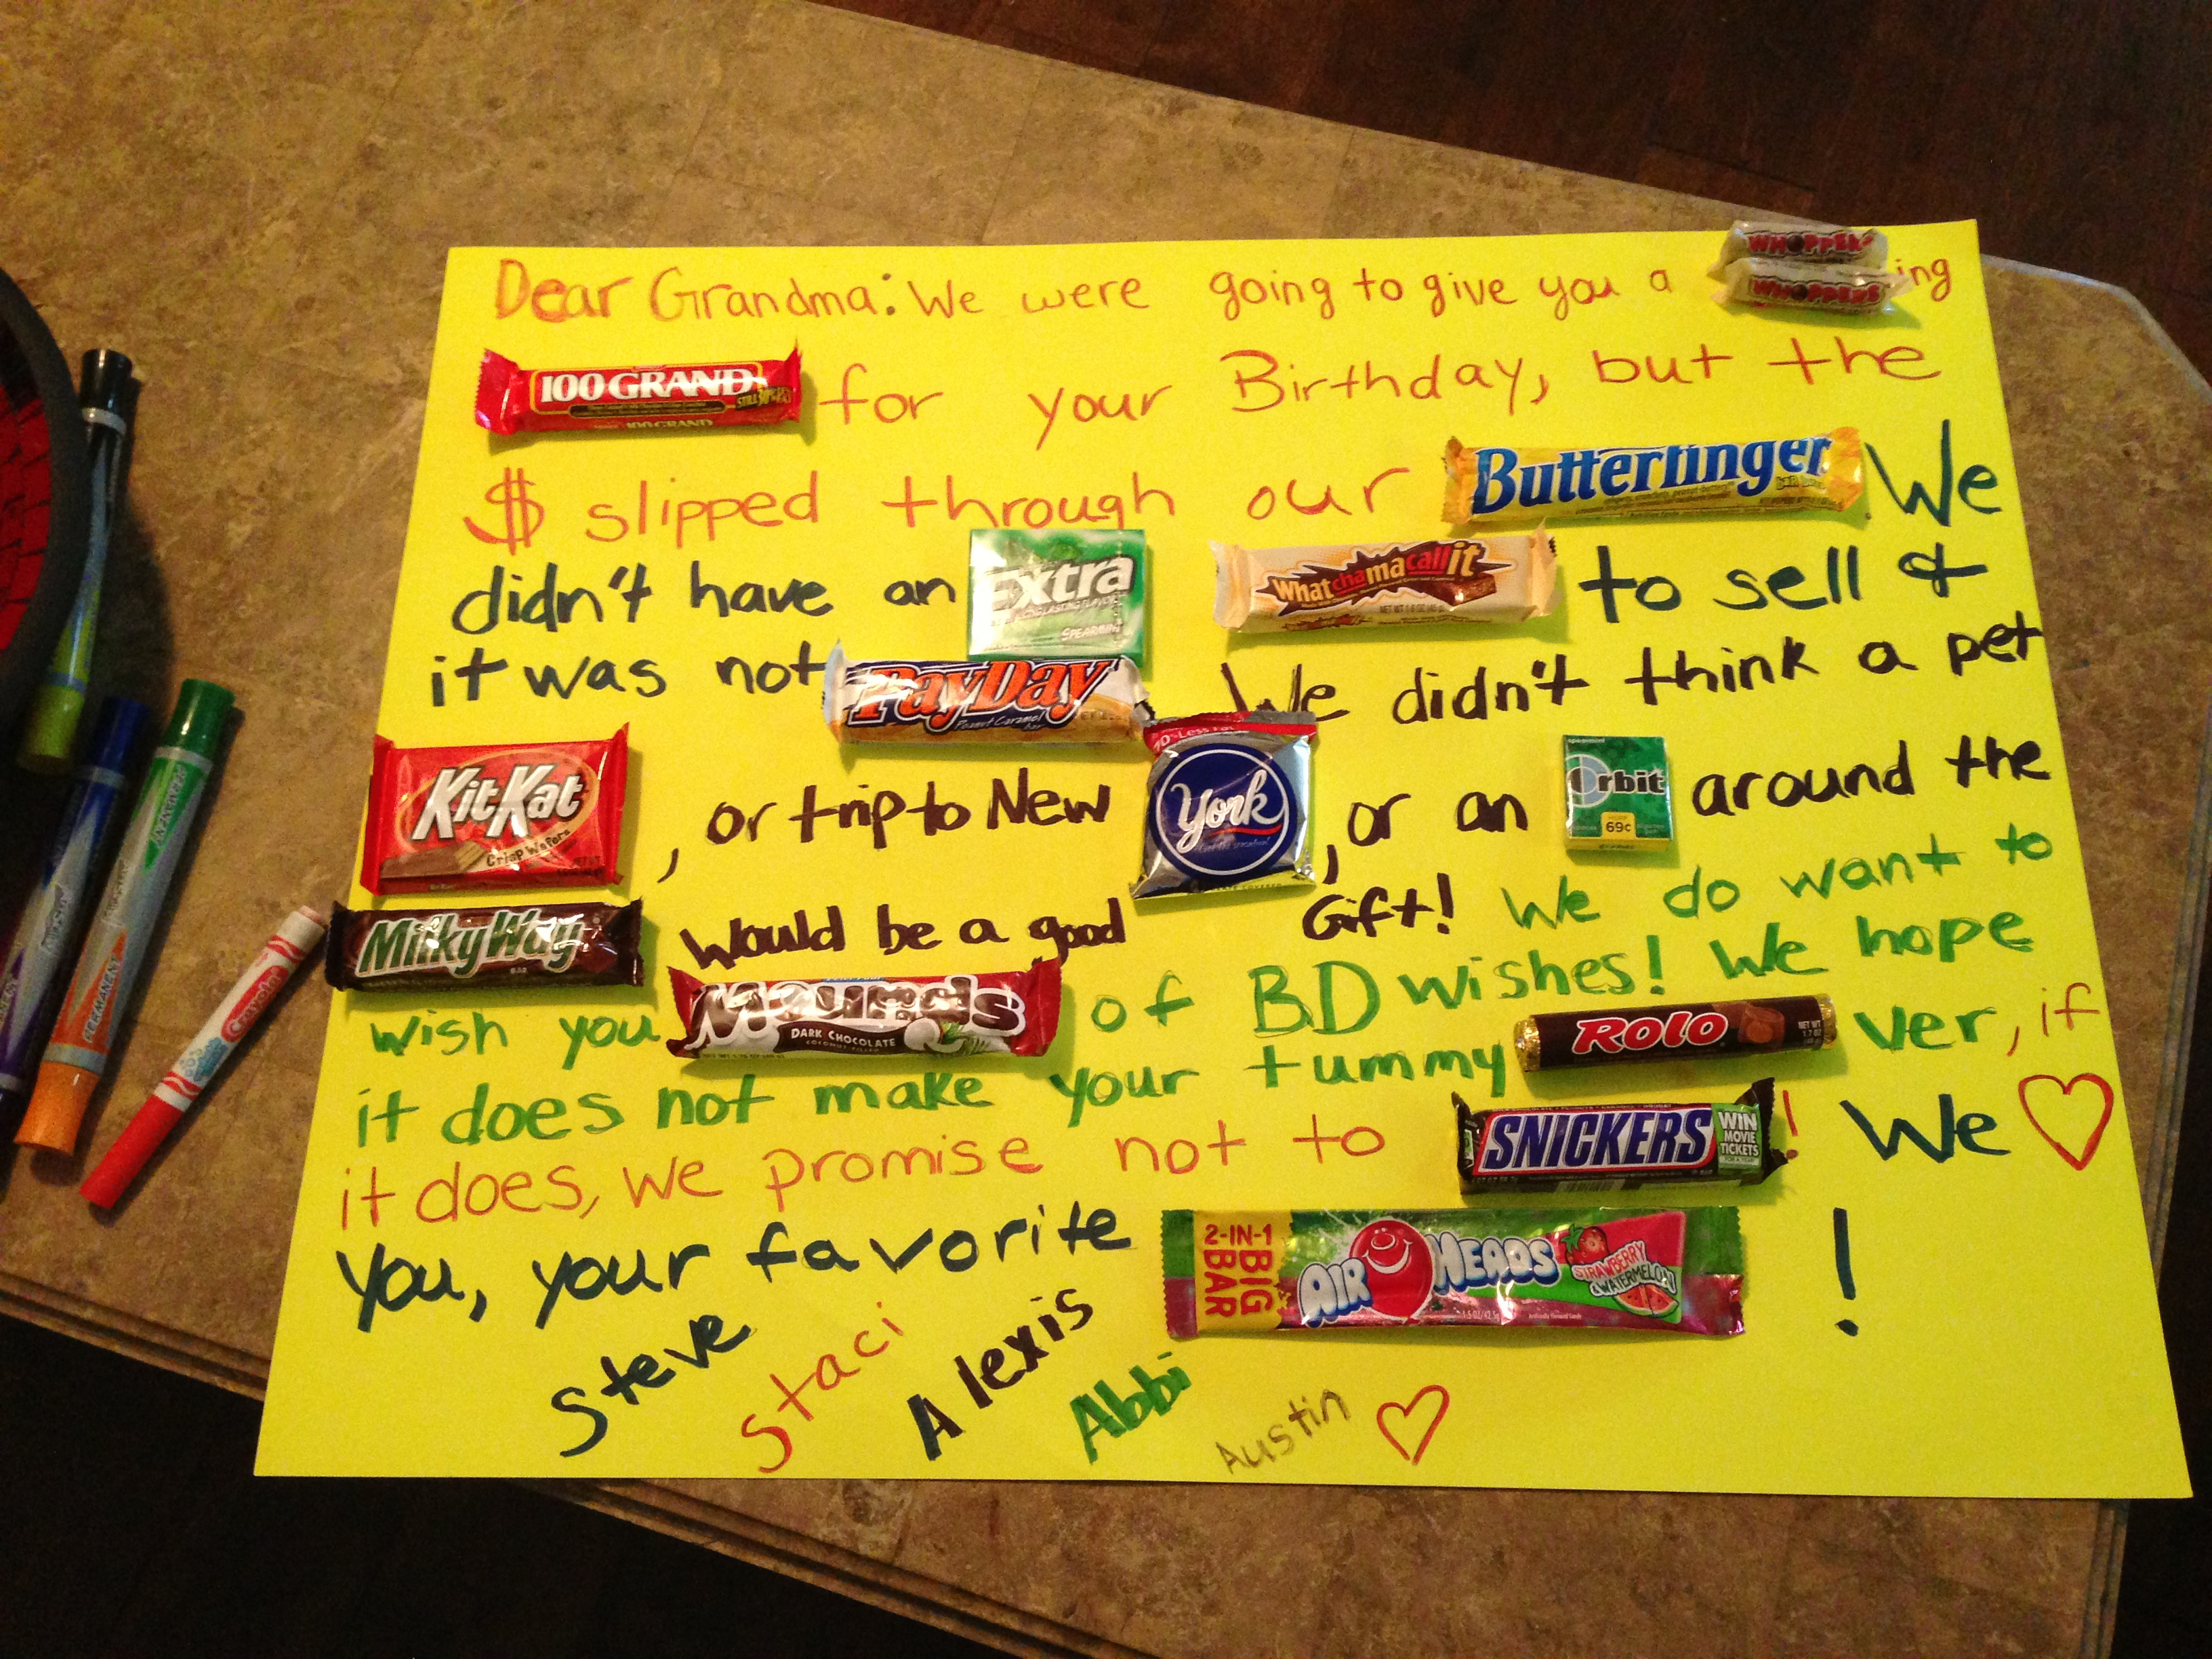 candy message poster for birthday ; 122551d5c3b6d2f474aaeee9b2e4b958